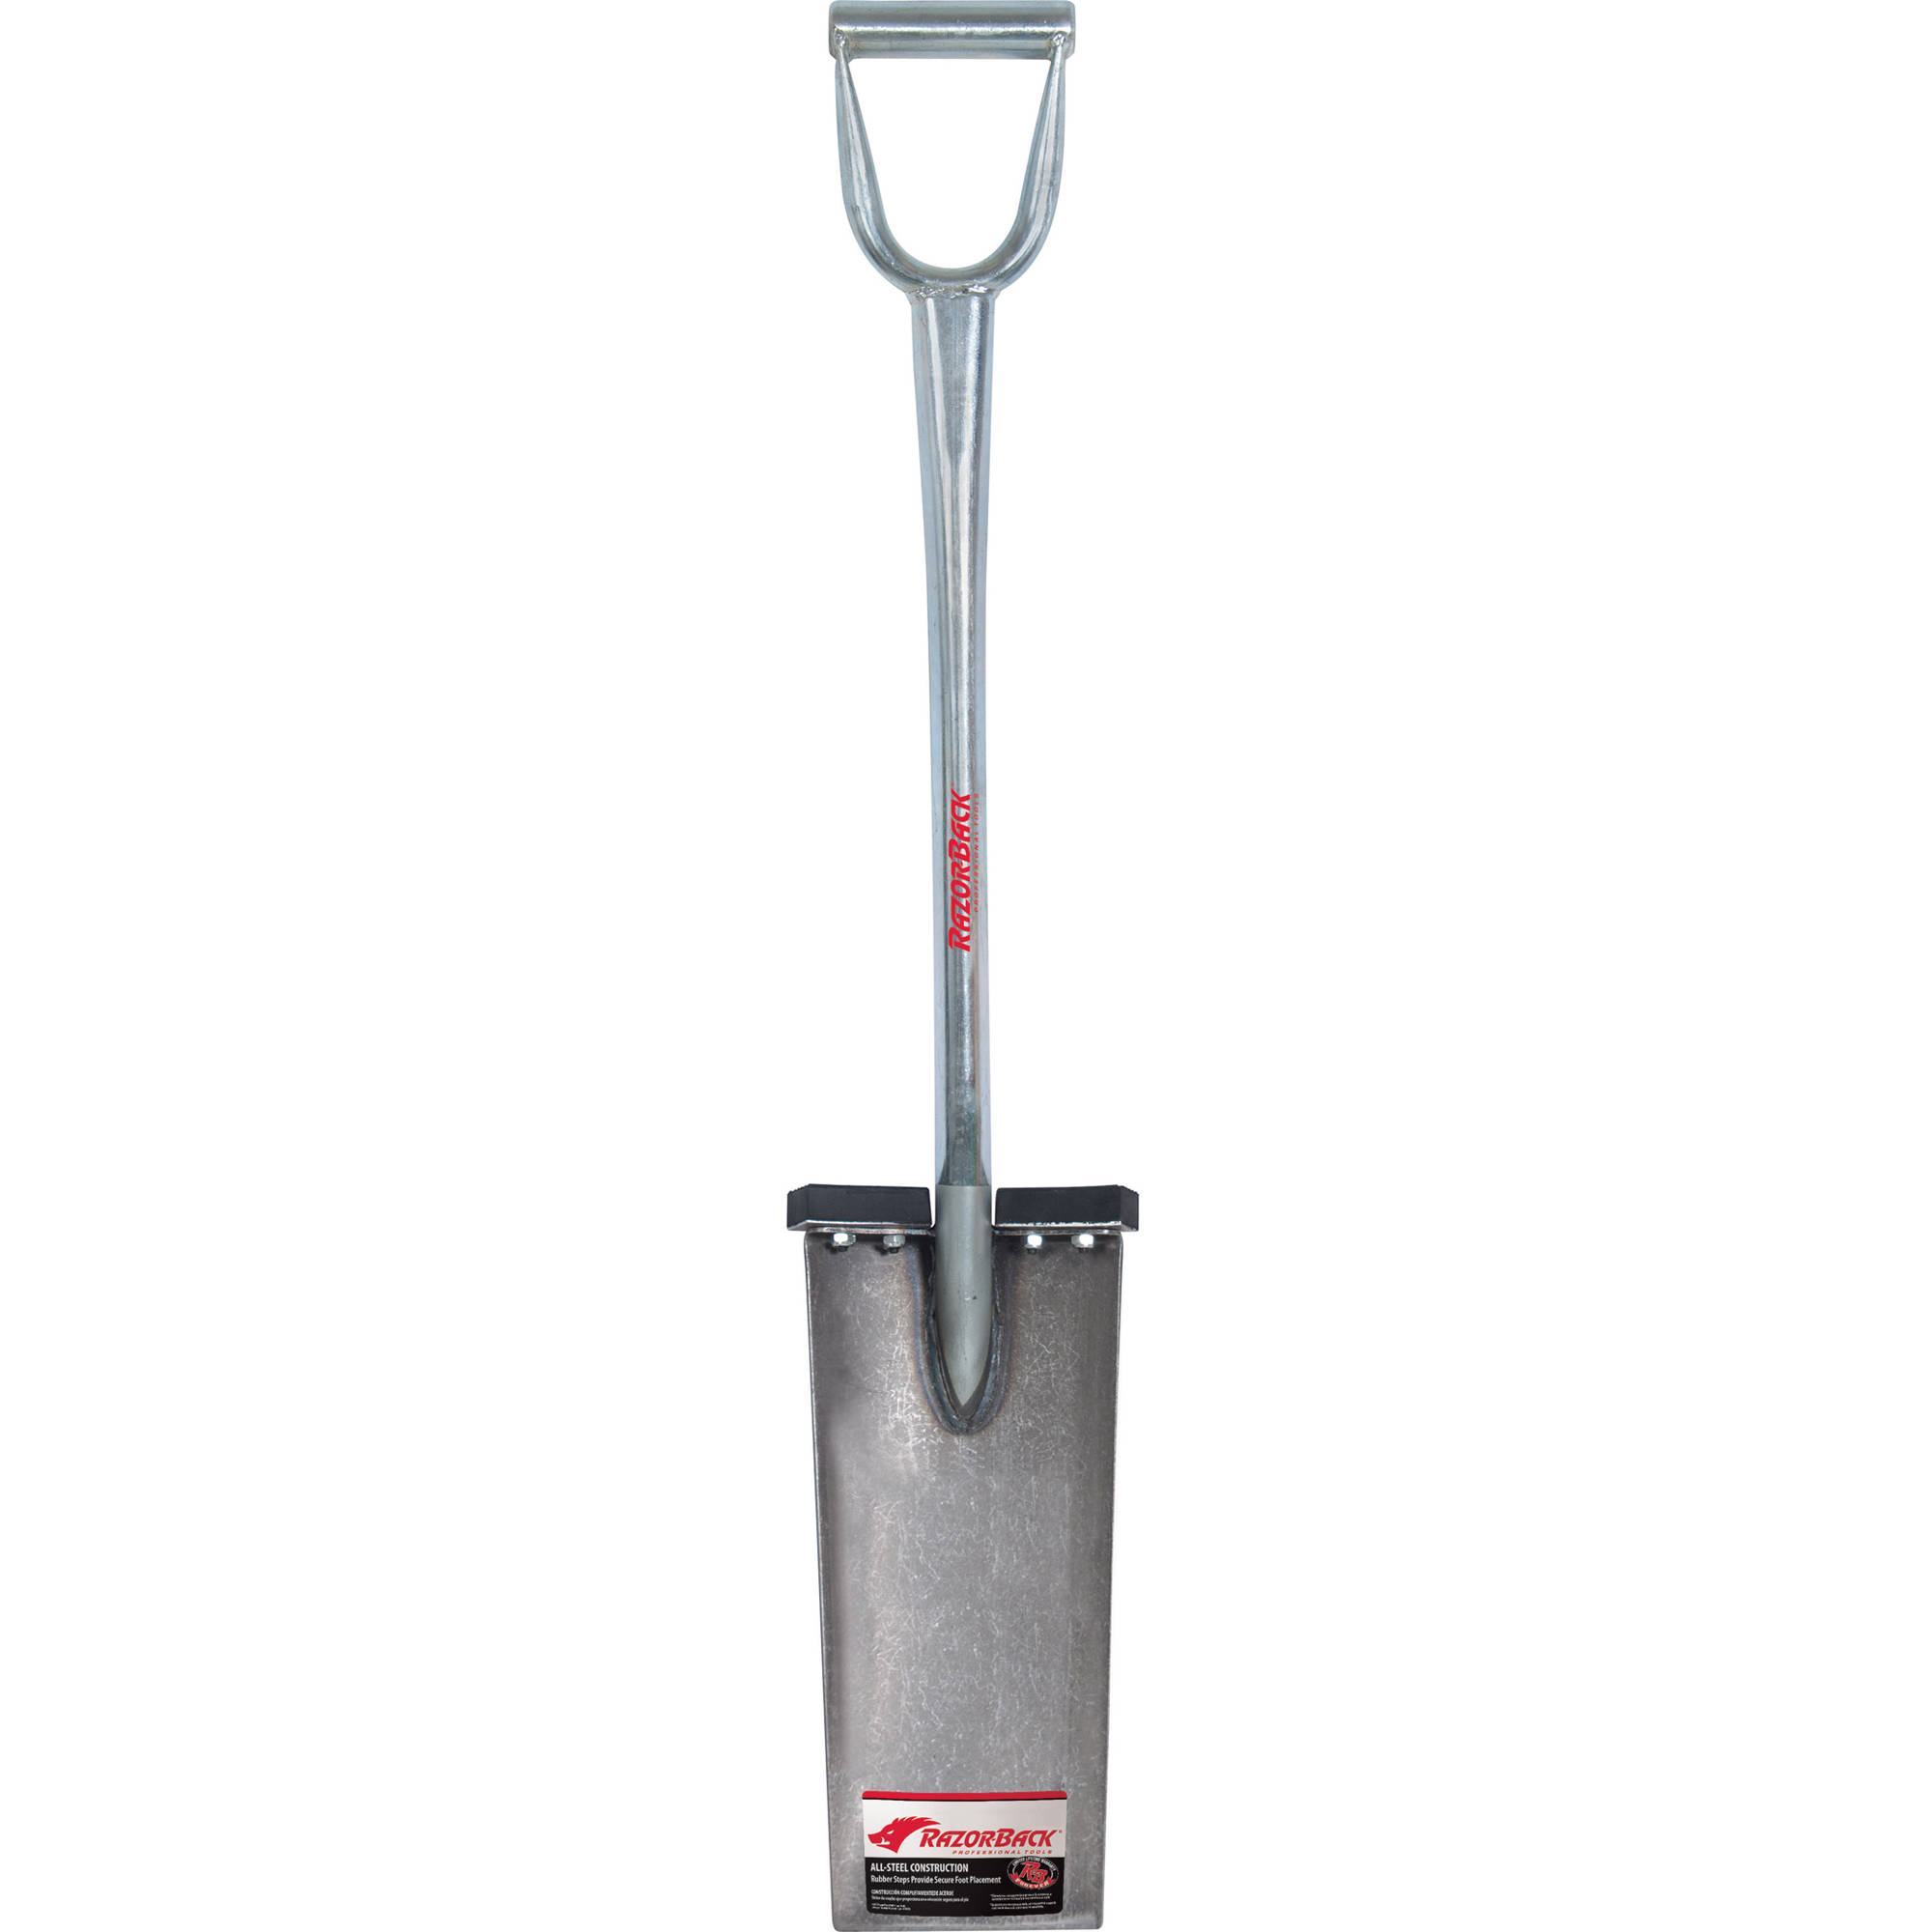 "RazorBack 2451700 15""Landscaper Guide All Steel Spade"